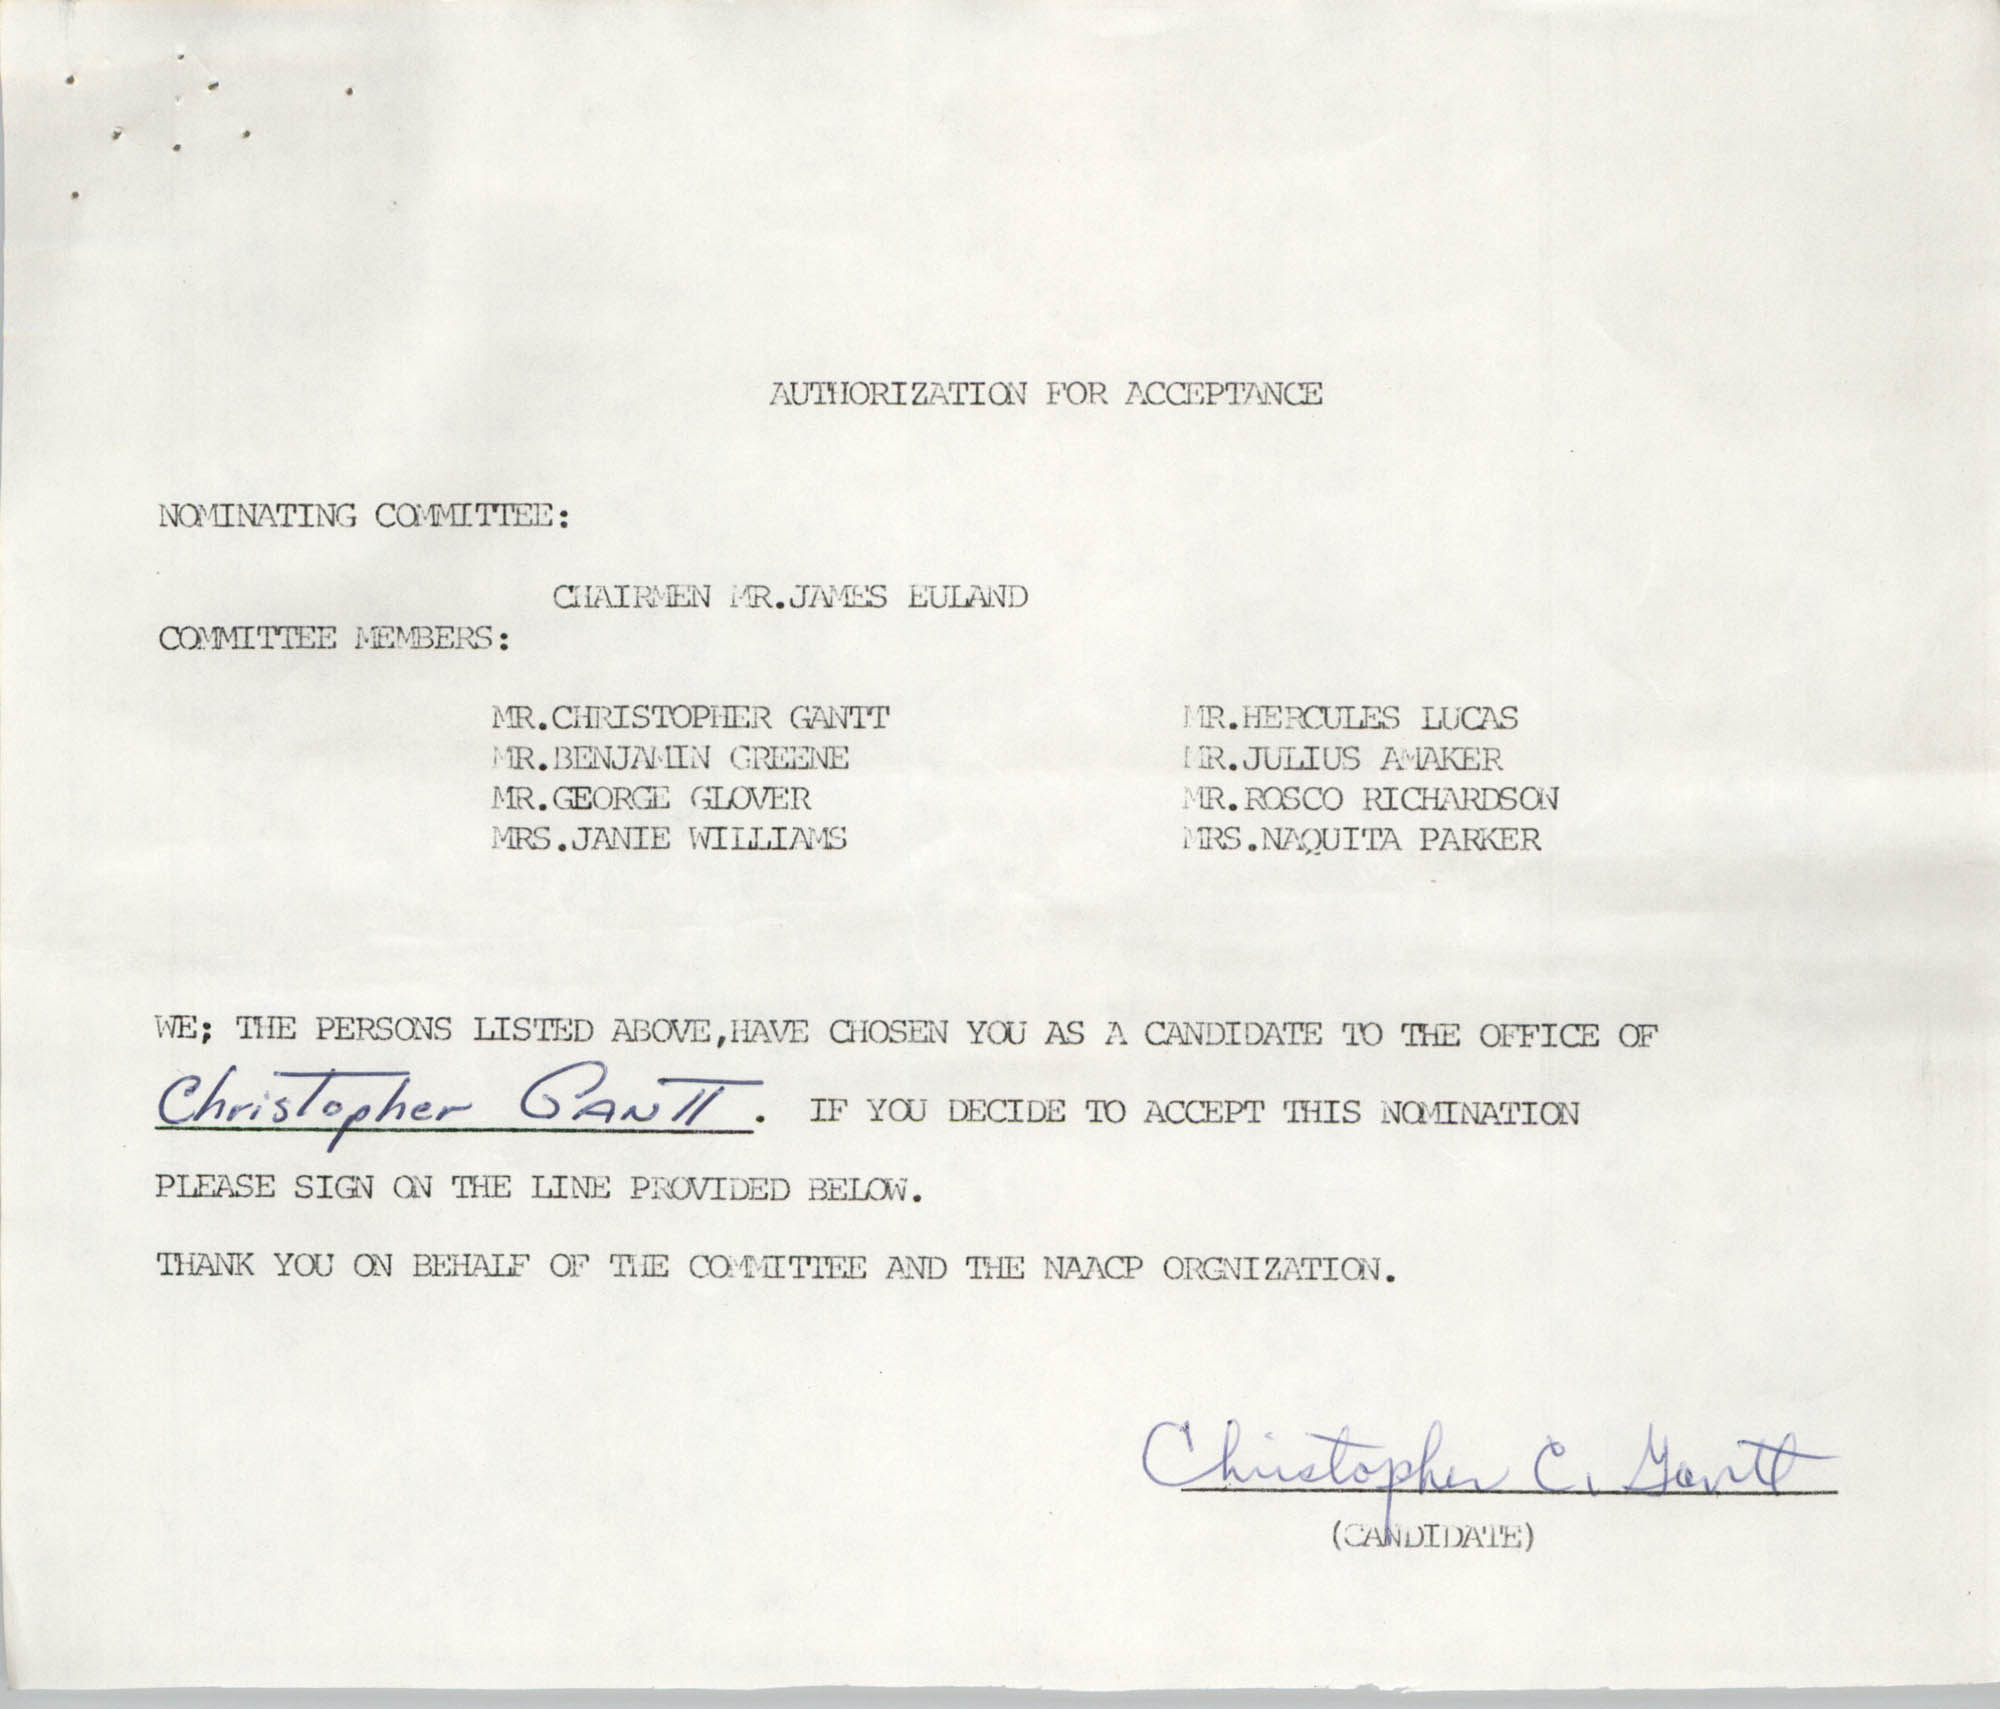 Charleston Branch of the NAACP Election Materials, Authorization for Acceptance for Christopher C. Gantt